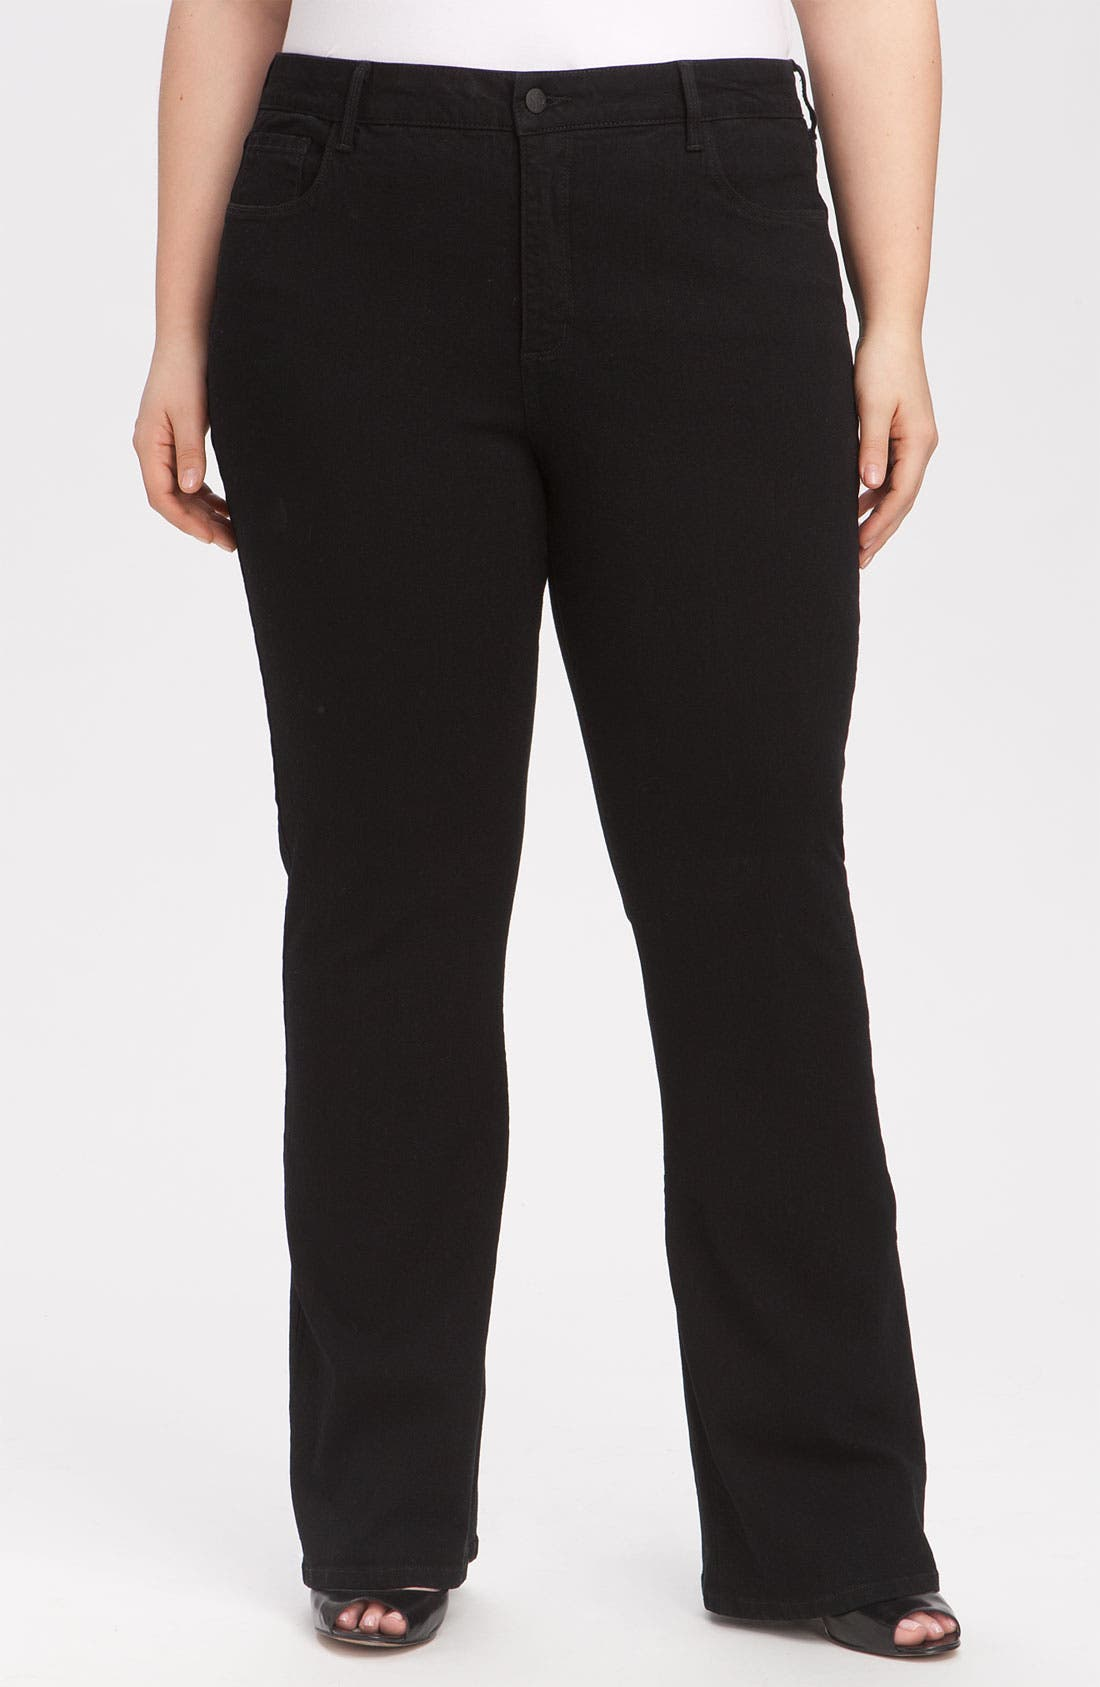 Main Image - NYDJ 'Barbara' Stretch Bootcut Jeans (Black) (Plus Size & Petite Plus)